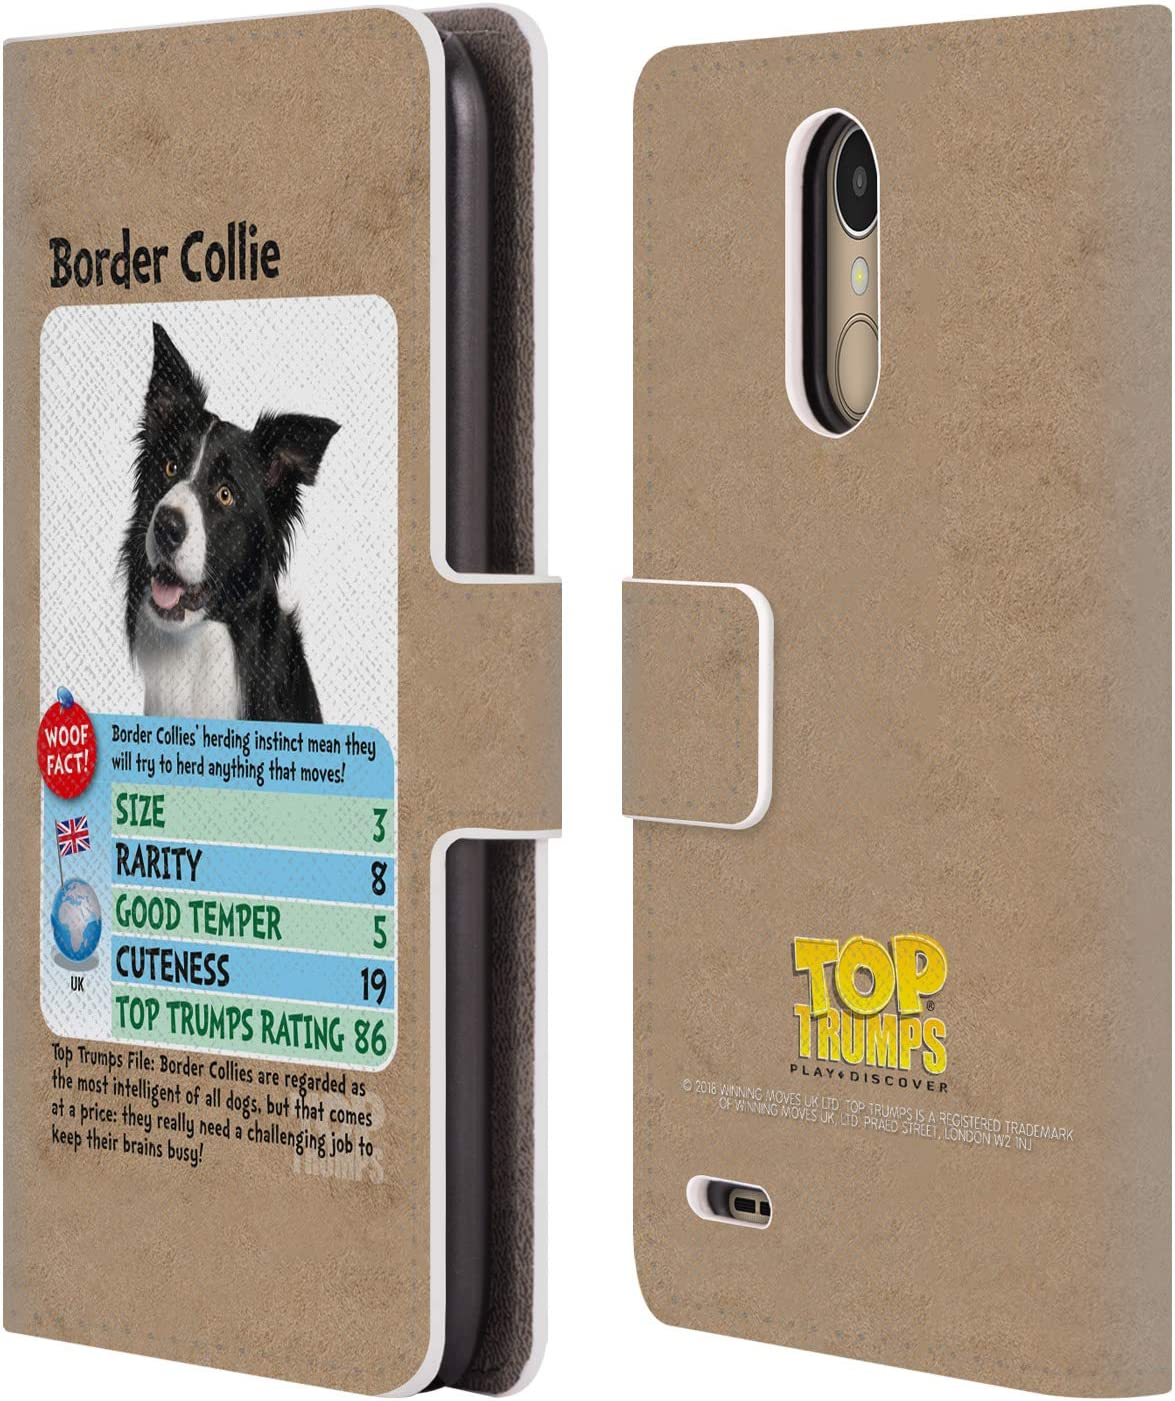 Official Top Trumps Border Collie Dogs 2 Leather Book Wallet Case Cover Compatible for LG K10 (2017) / K20 Plus